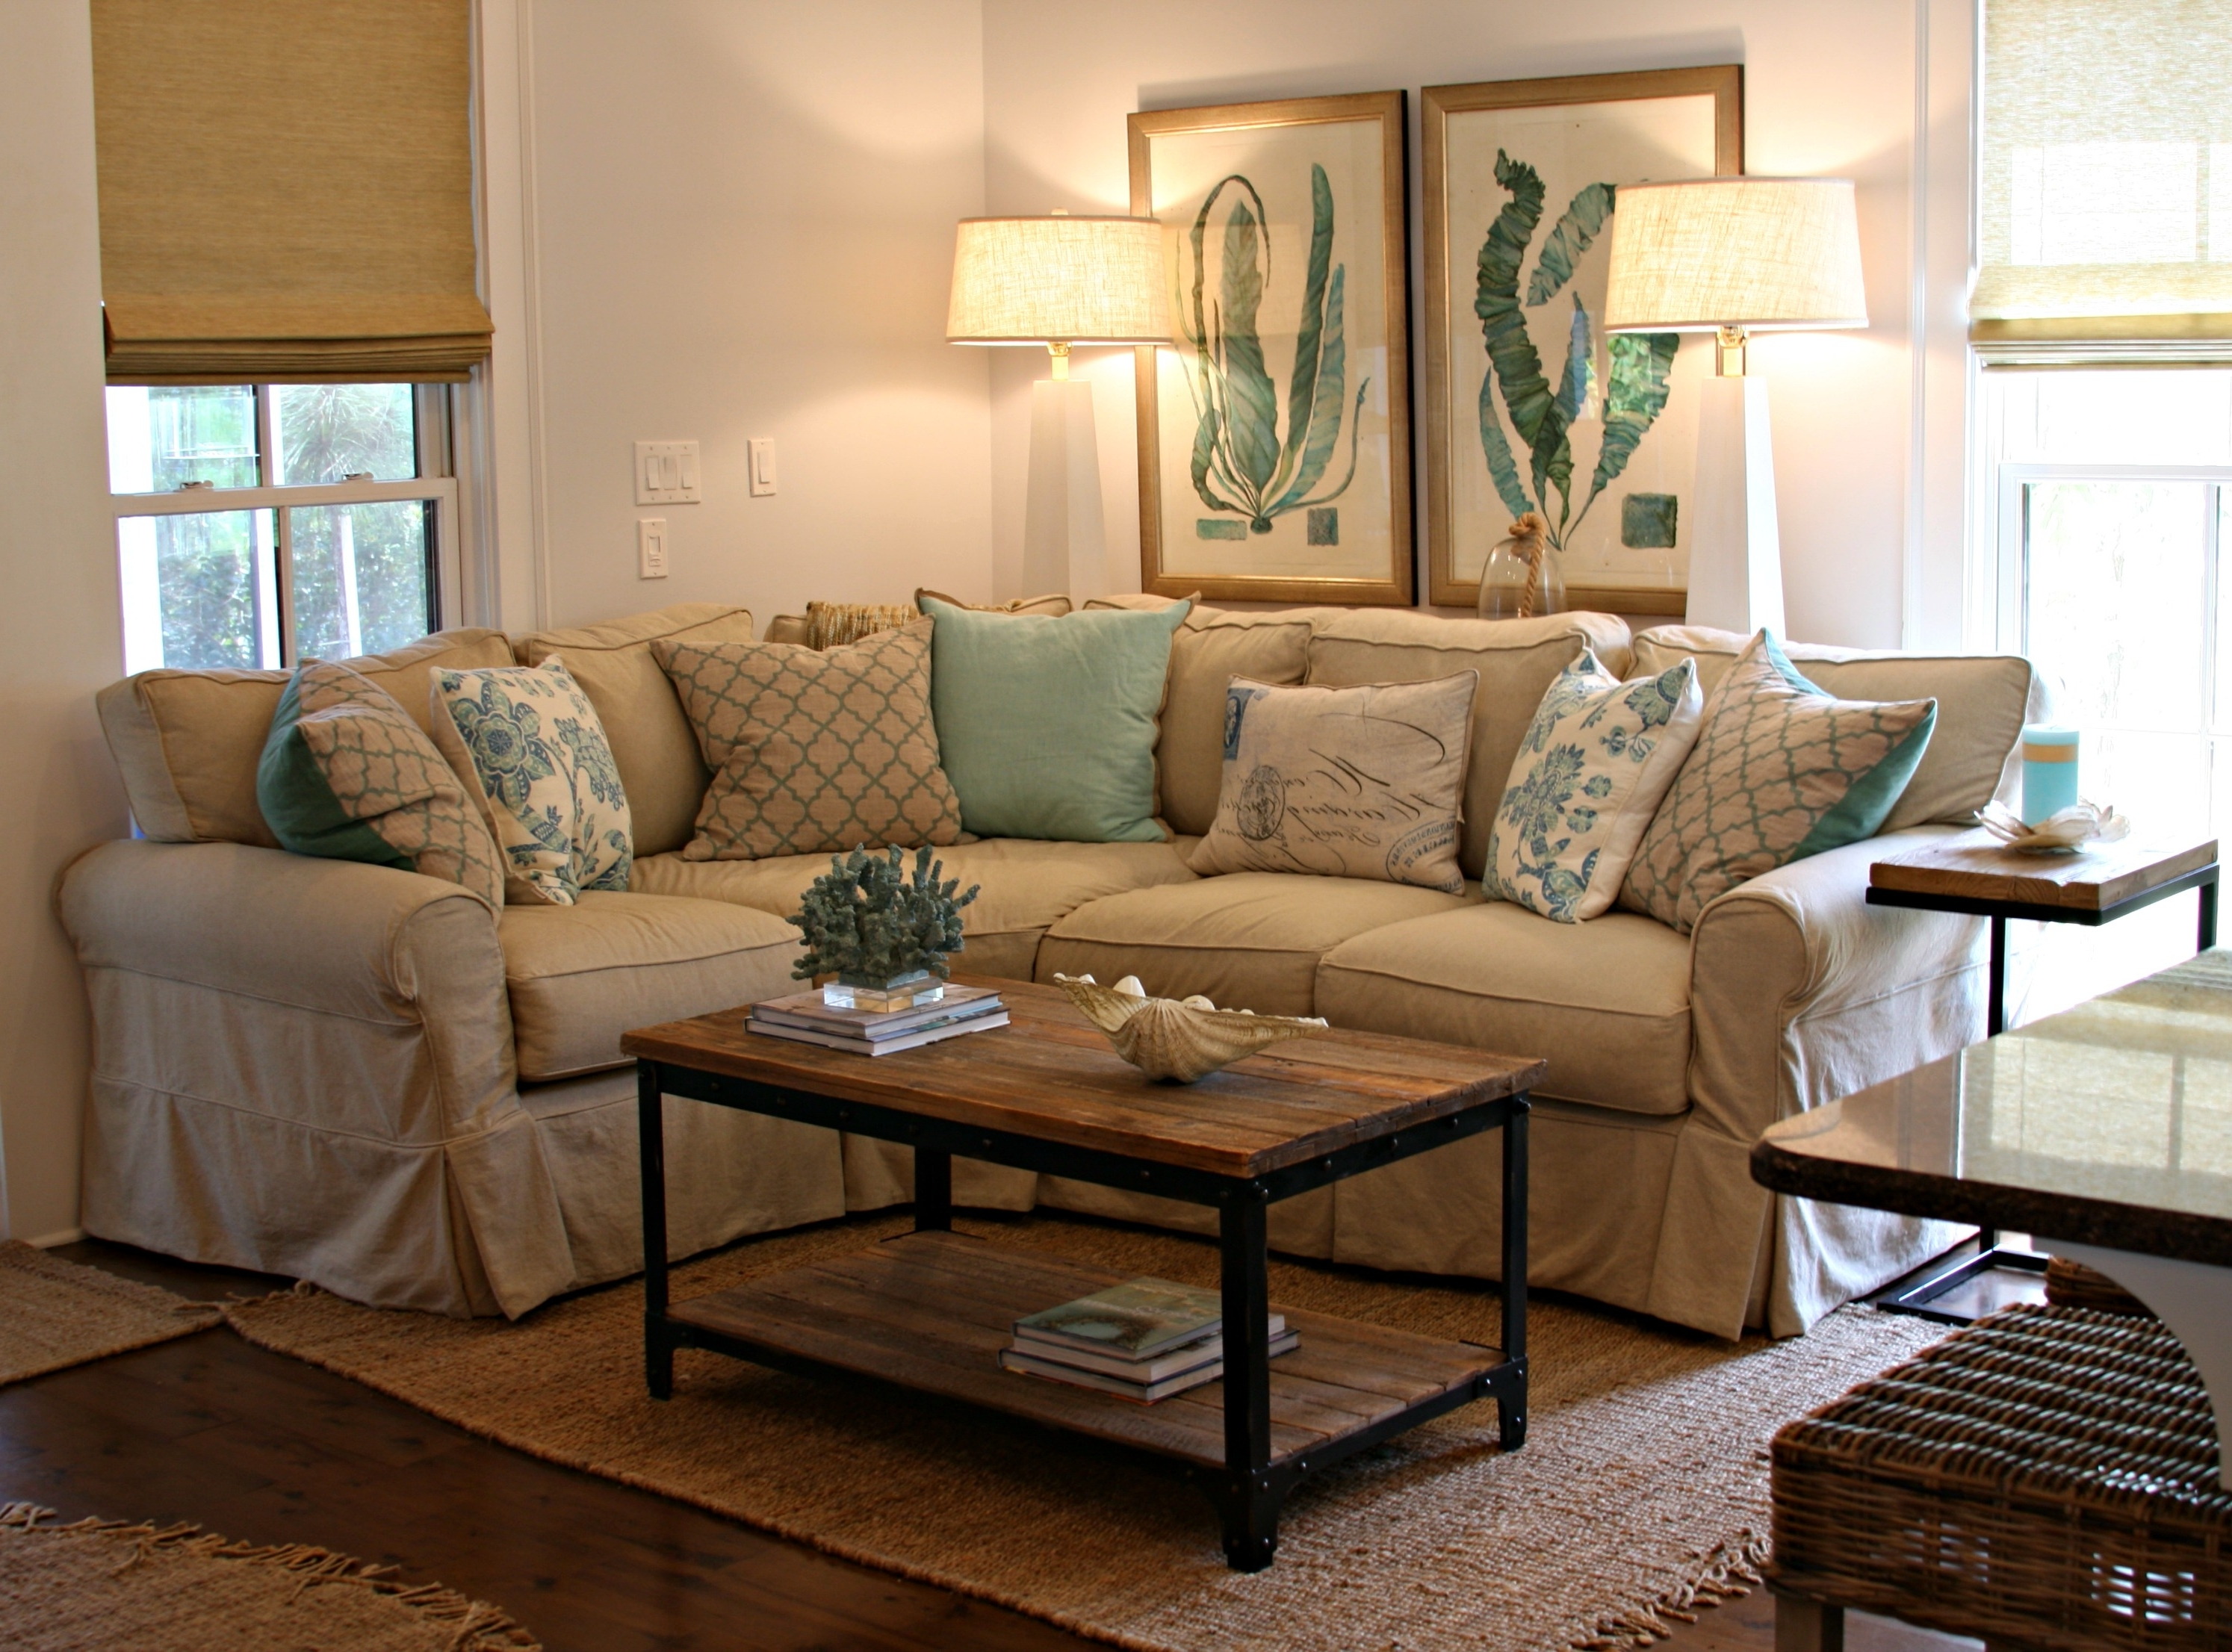 Country Cottage Sofas And Chairs Pertaining To Popular French Country Sofa Living Room Elegant Sofas Living Room Round (View 6 of 15)